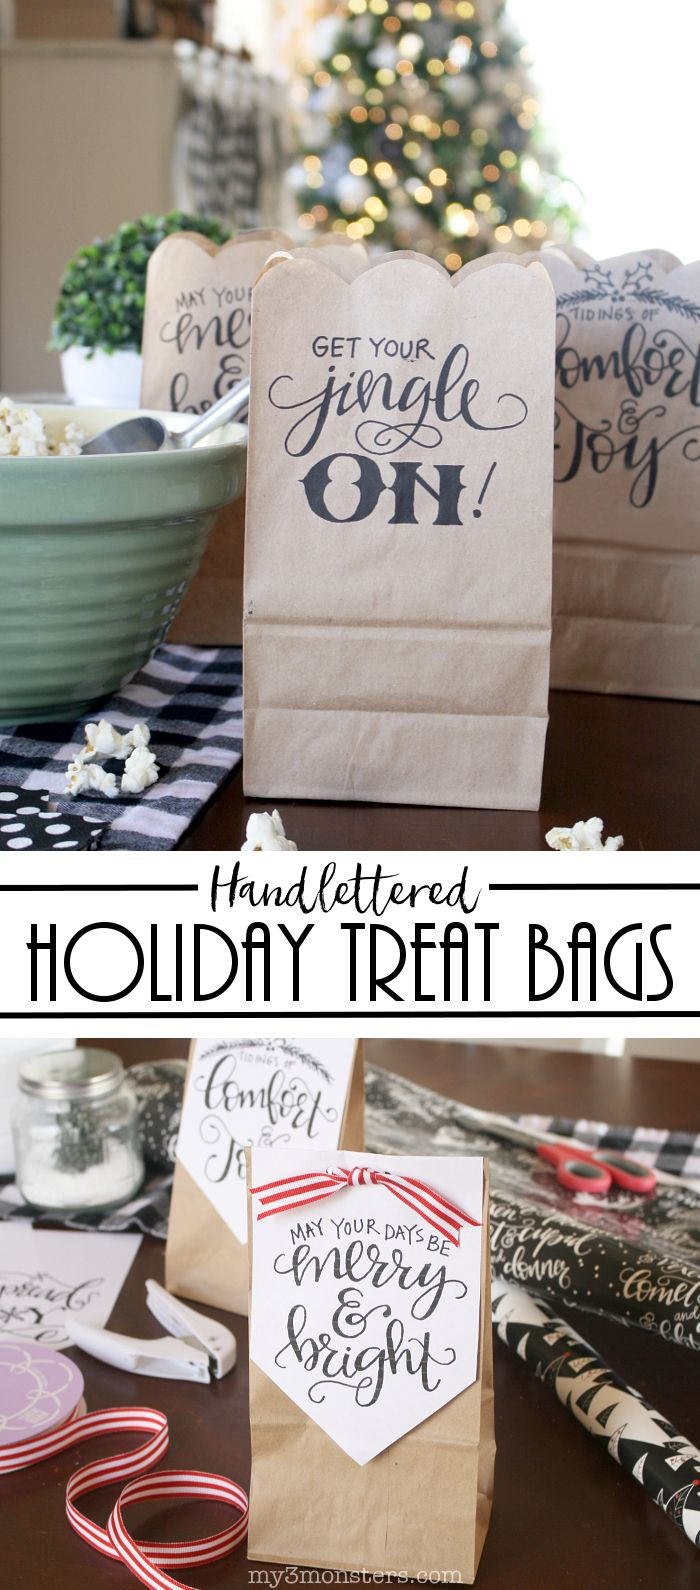 handlettered holiday treat bags christmas christmas treat bags easy christmas treats. Black Bedroom Furniture Sets. Home Design Ideas